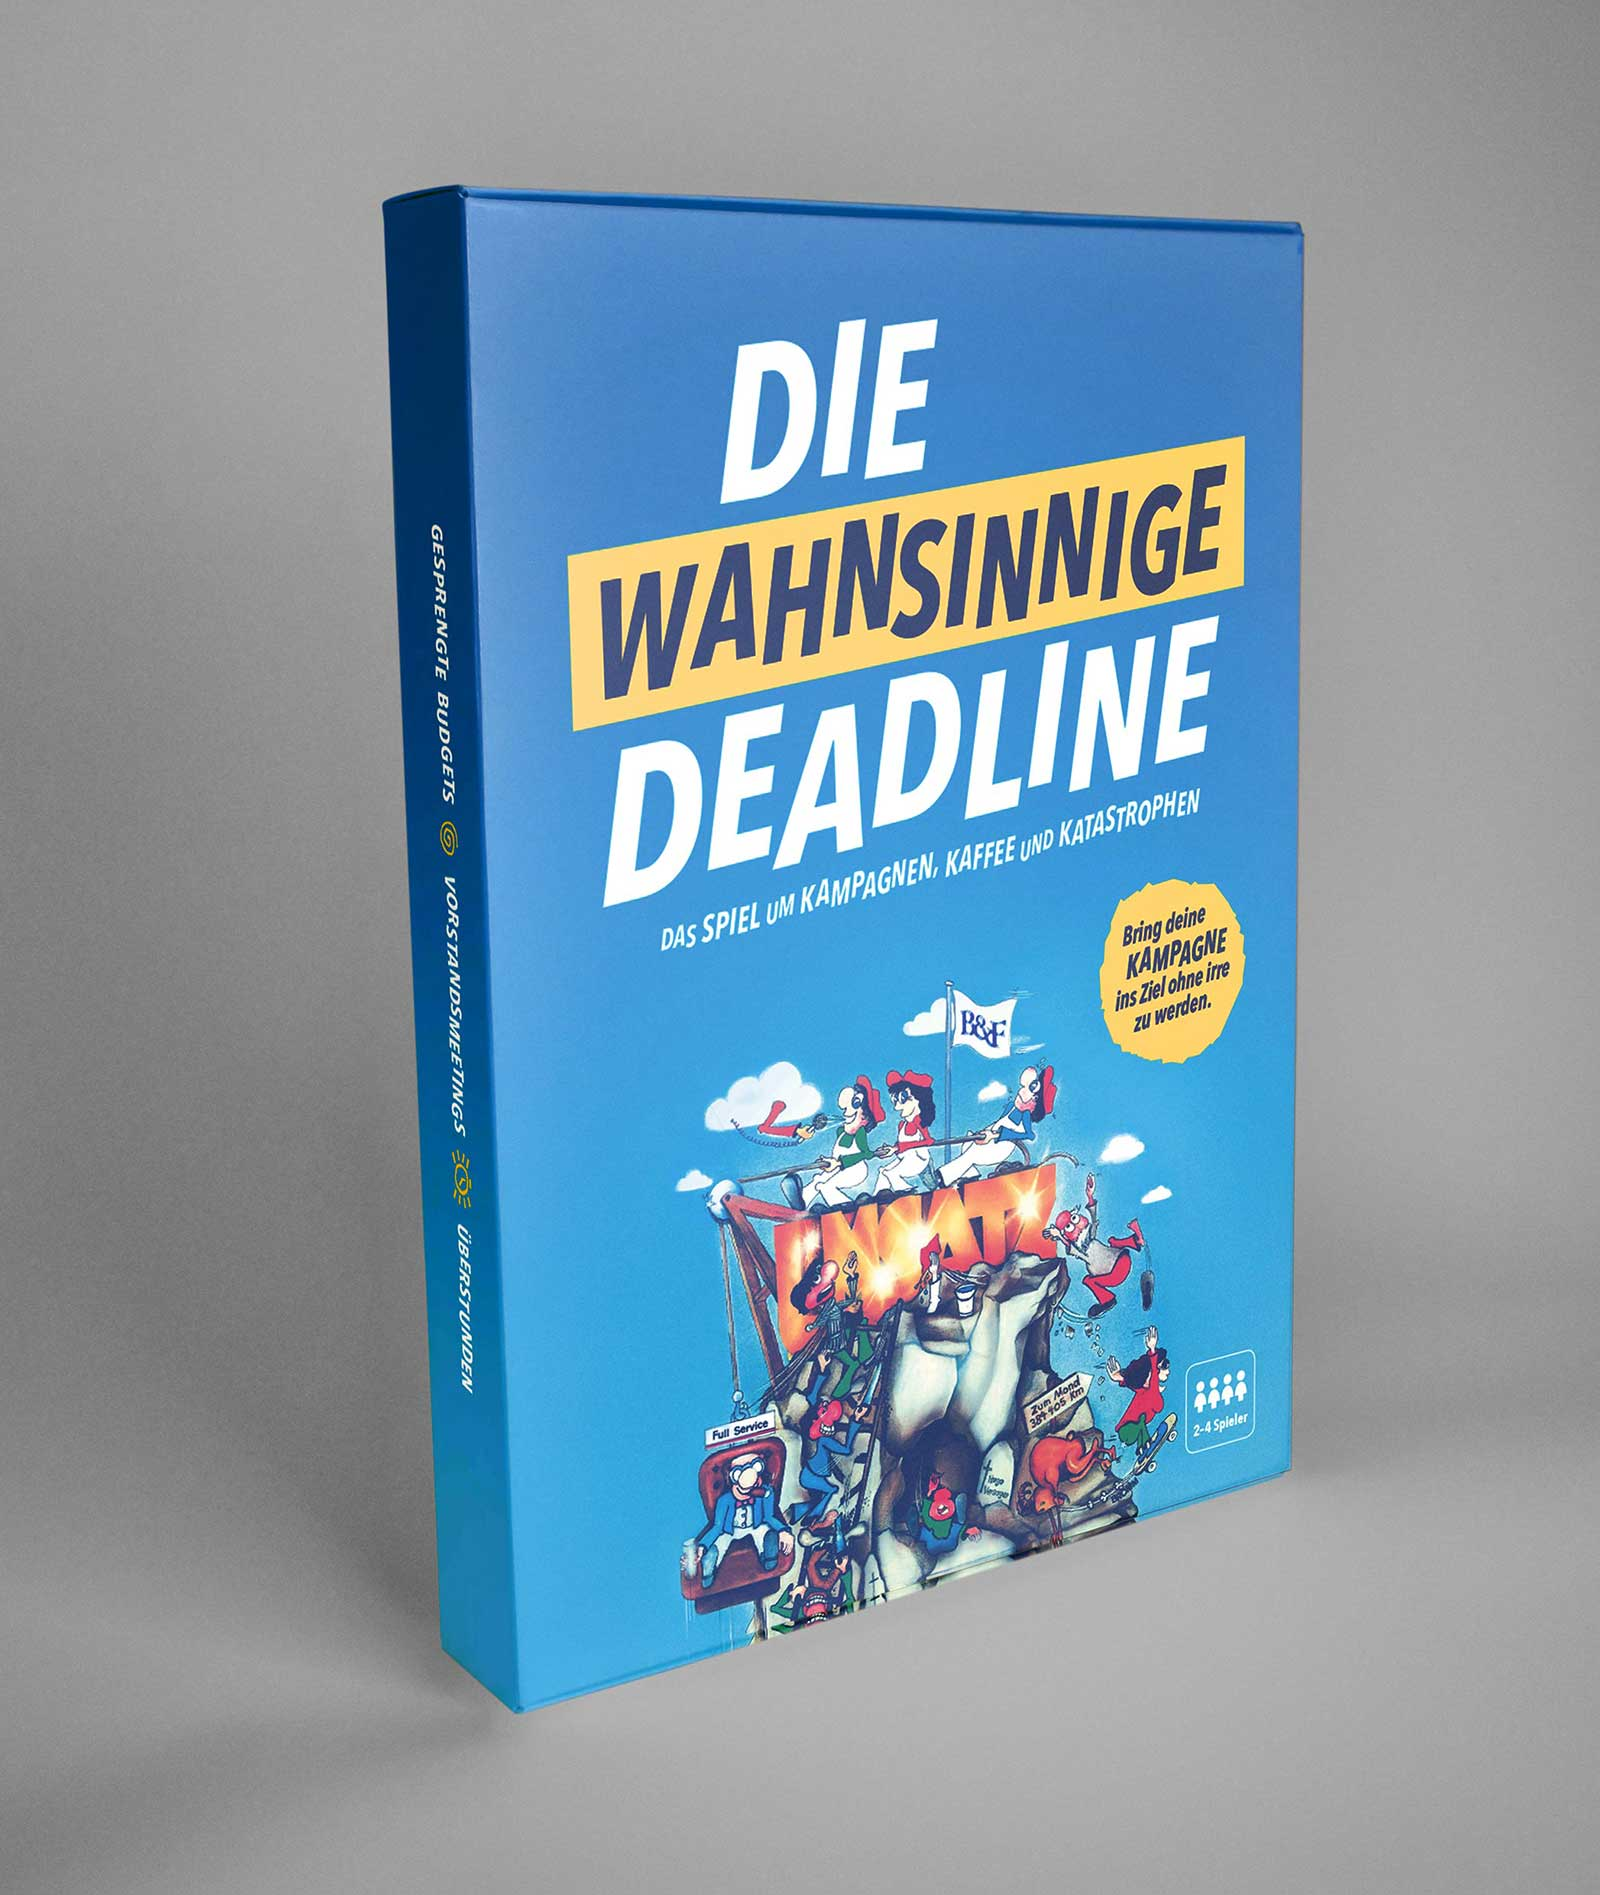 The Crazy Deadline. A game about campaigns, coffee and catastrophes.